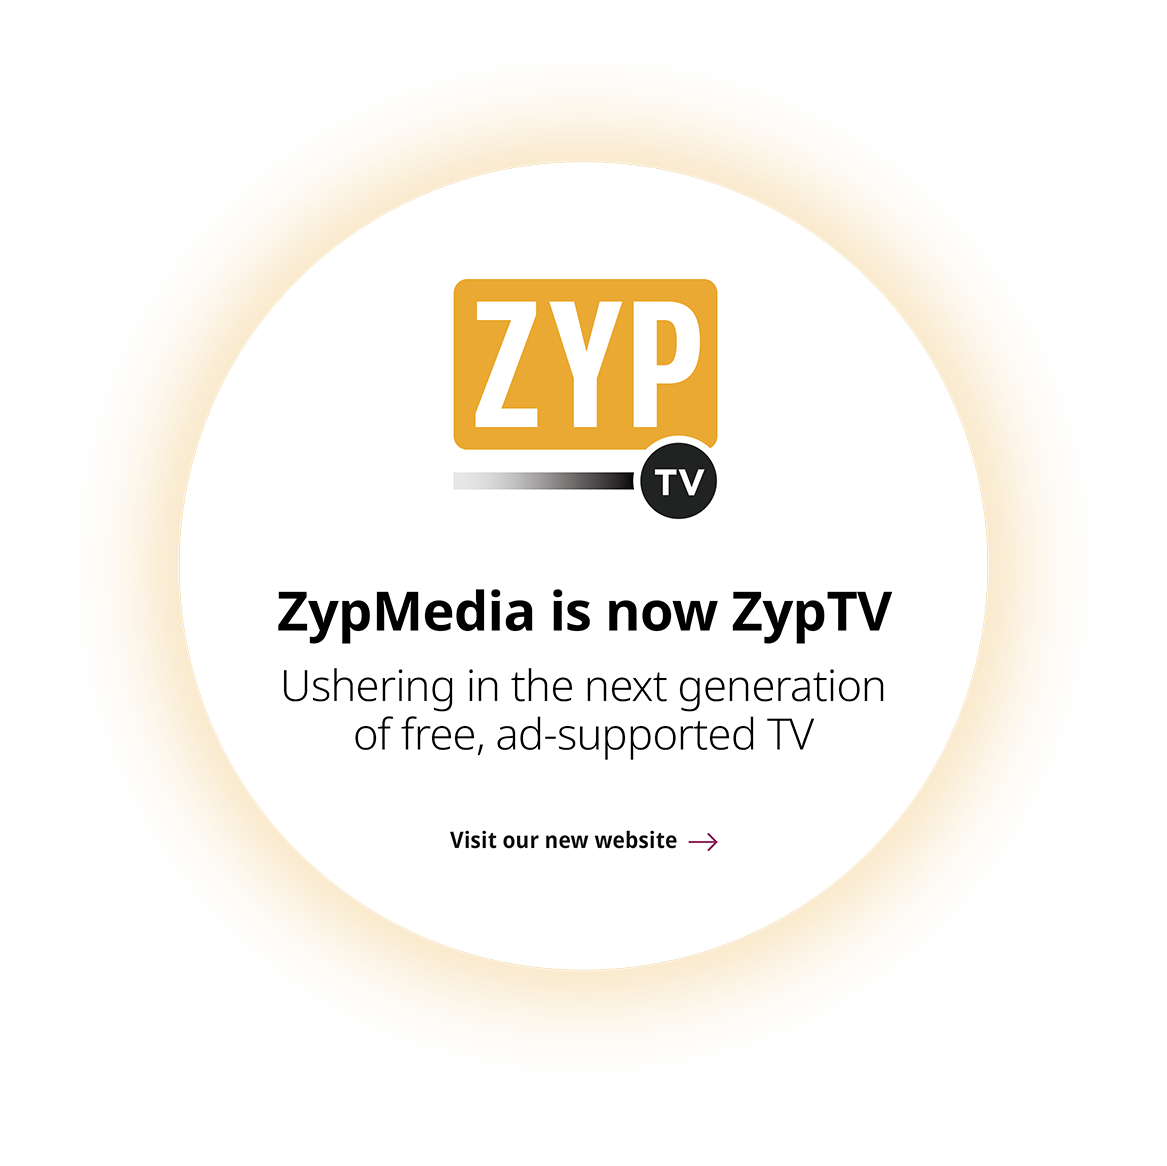 ZypTV is now ZypMedia